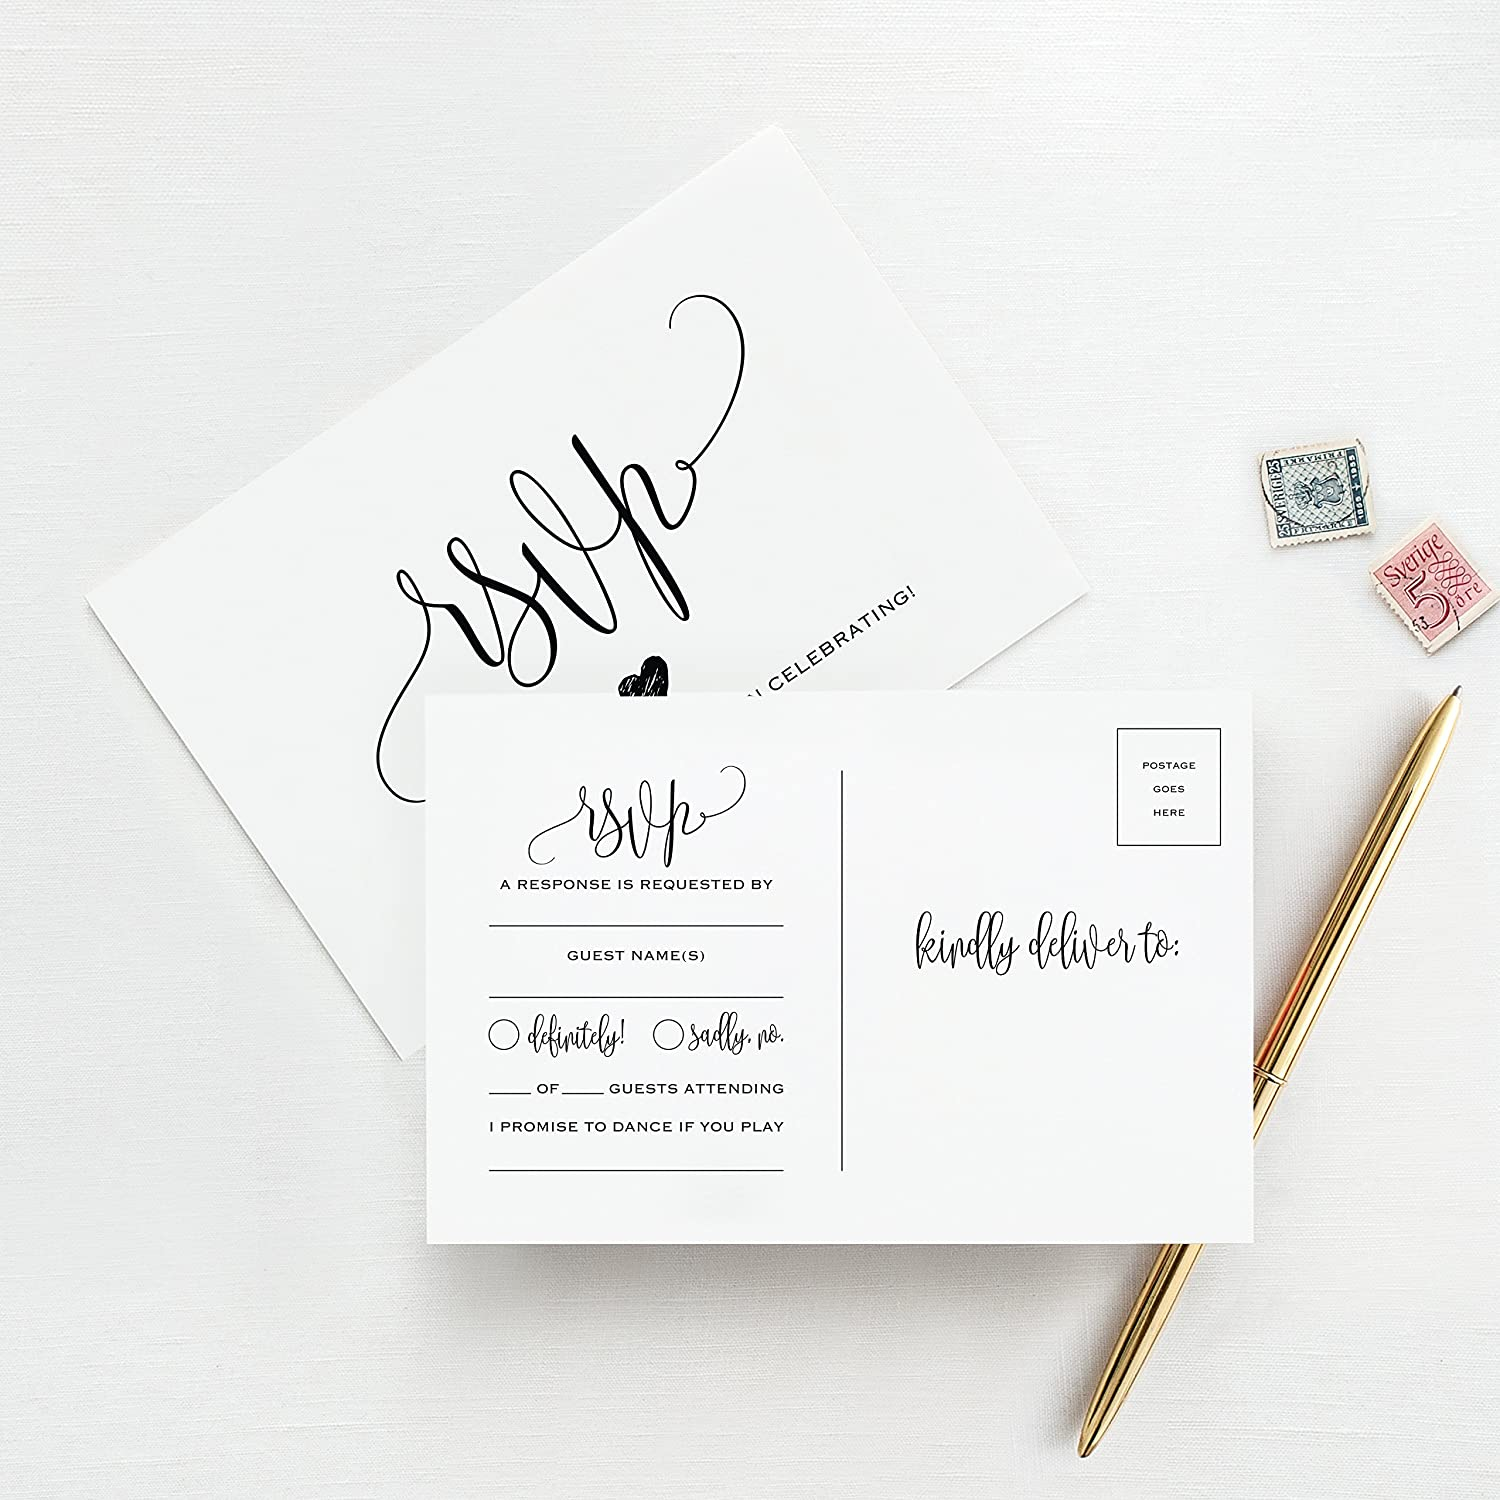 Wedding Response Cards.Rsvp Postcards For Wedding 50 Pack Of Response Cards Reply Cards Perfect For Bridal Shower Rehearsal Dinner Engagement Party Baby Shower Or Any